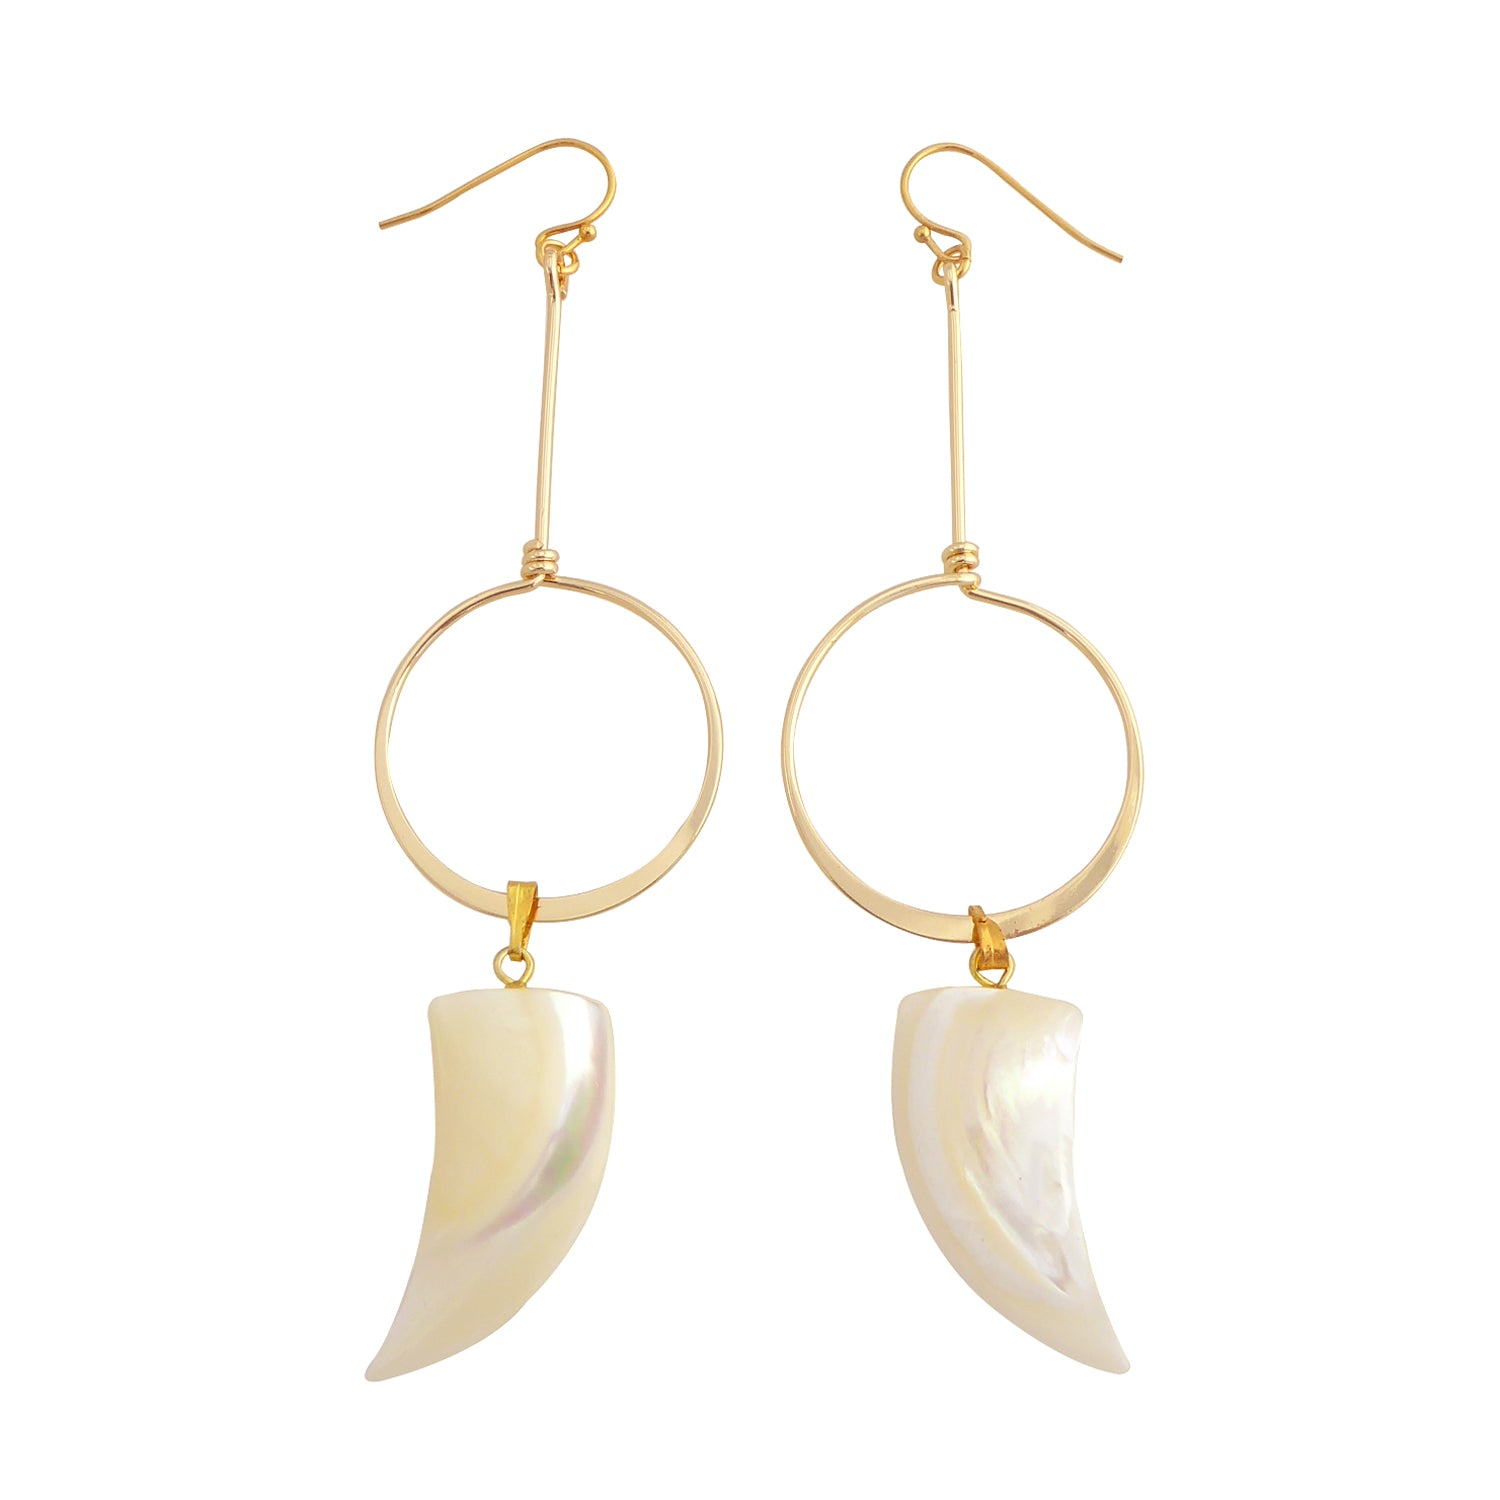 Meri gold and mother of pearl shell earrings by Jenny Dayco 1